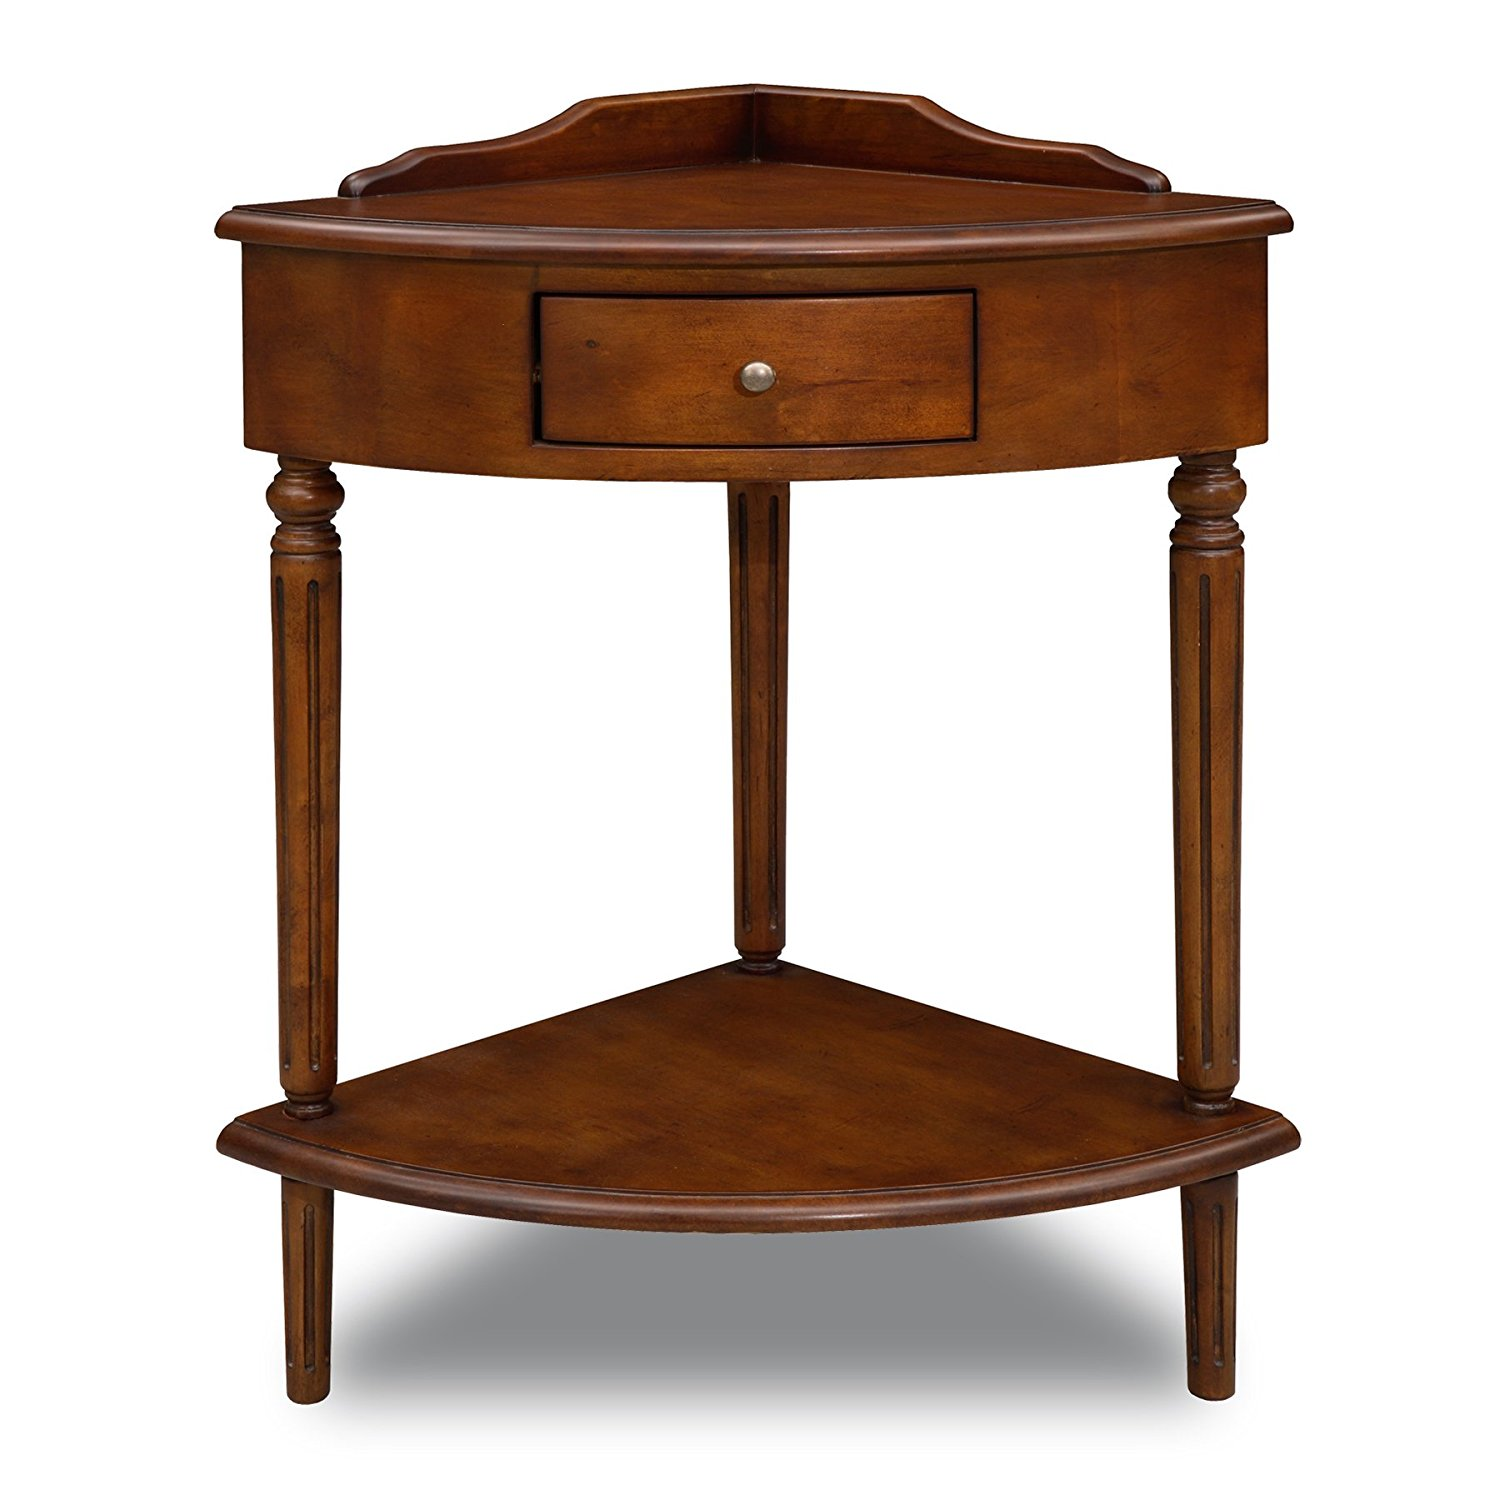 lovely small accent table for wood corner dining room compact with drawer and lower shelf hammered copper top end tables large shade umbrella side drawers glass lamps living